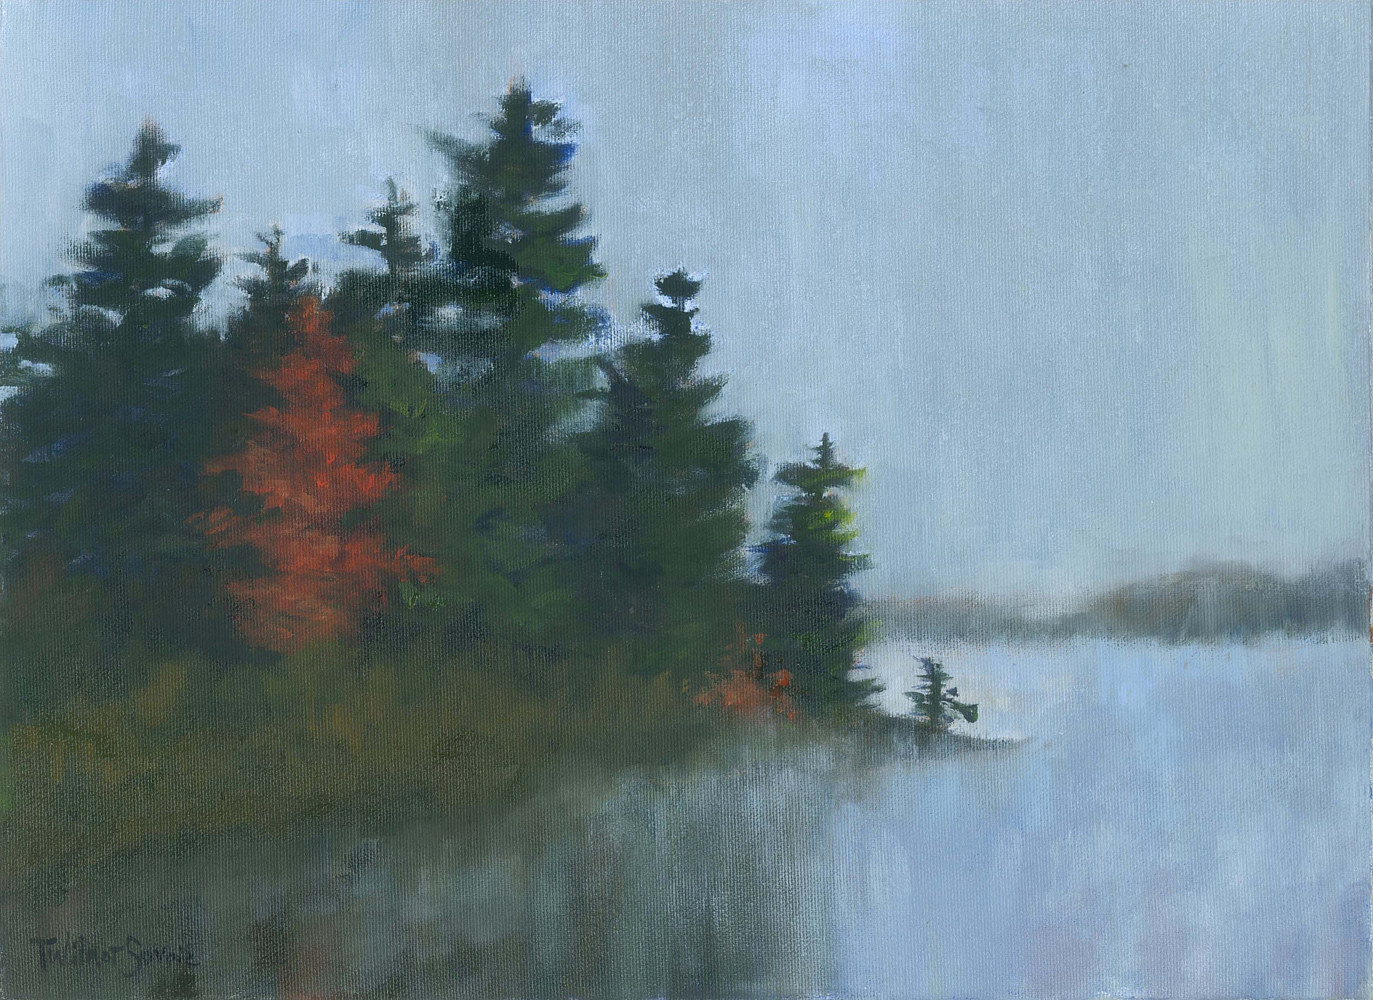 Morning Mist II by Patricia Savoie